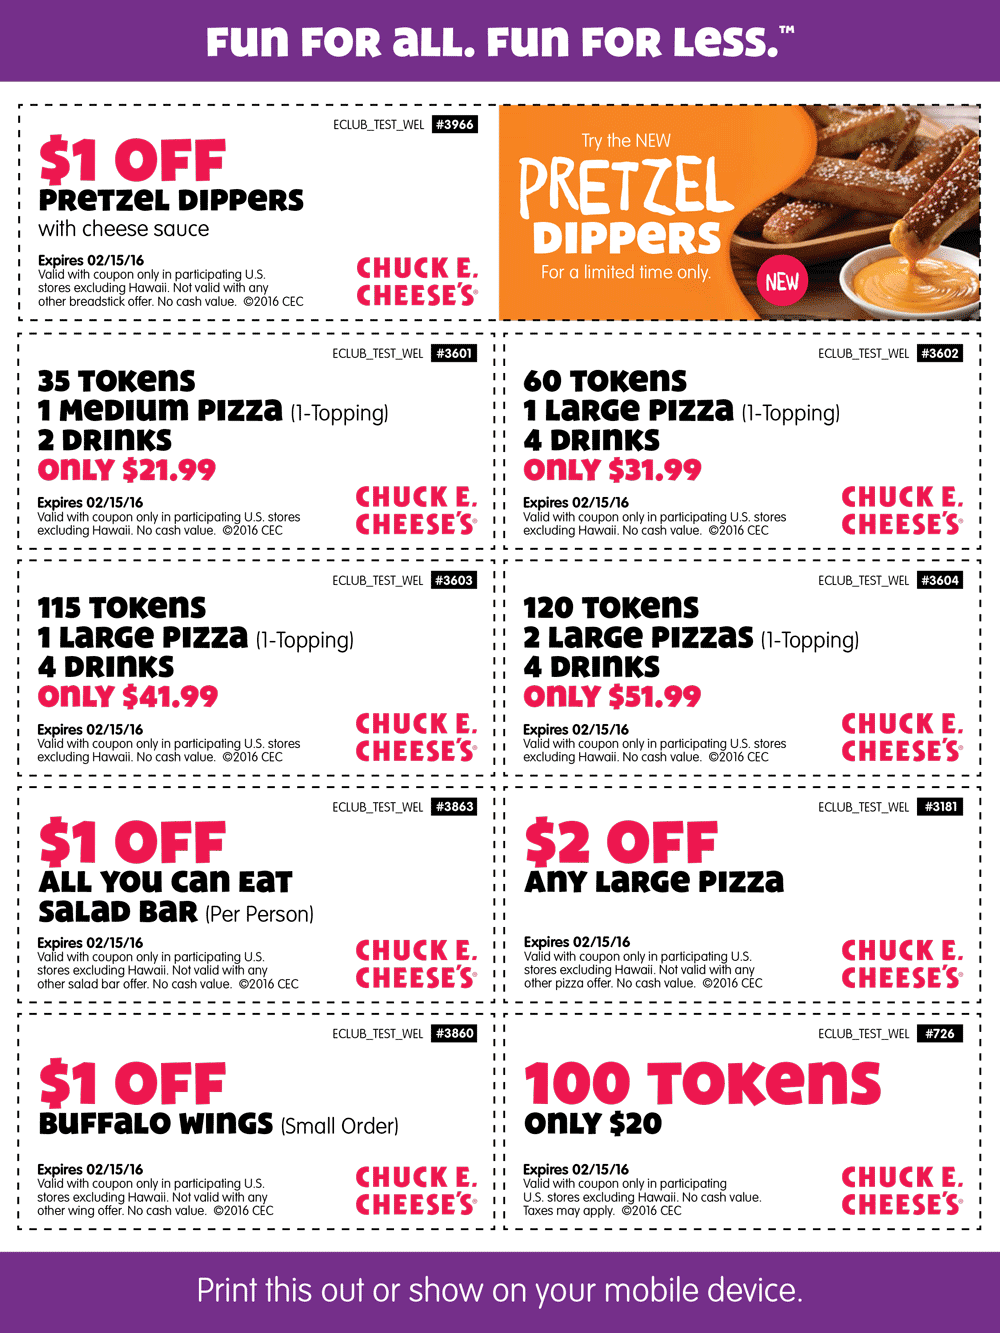 Chuck E. Cheese Coupon July 2018 100 tokens for $20 & more at Chuck E. Cheese